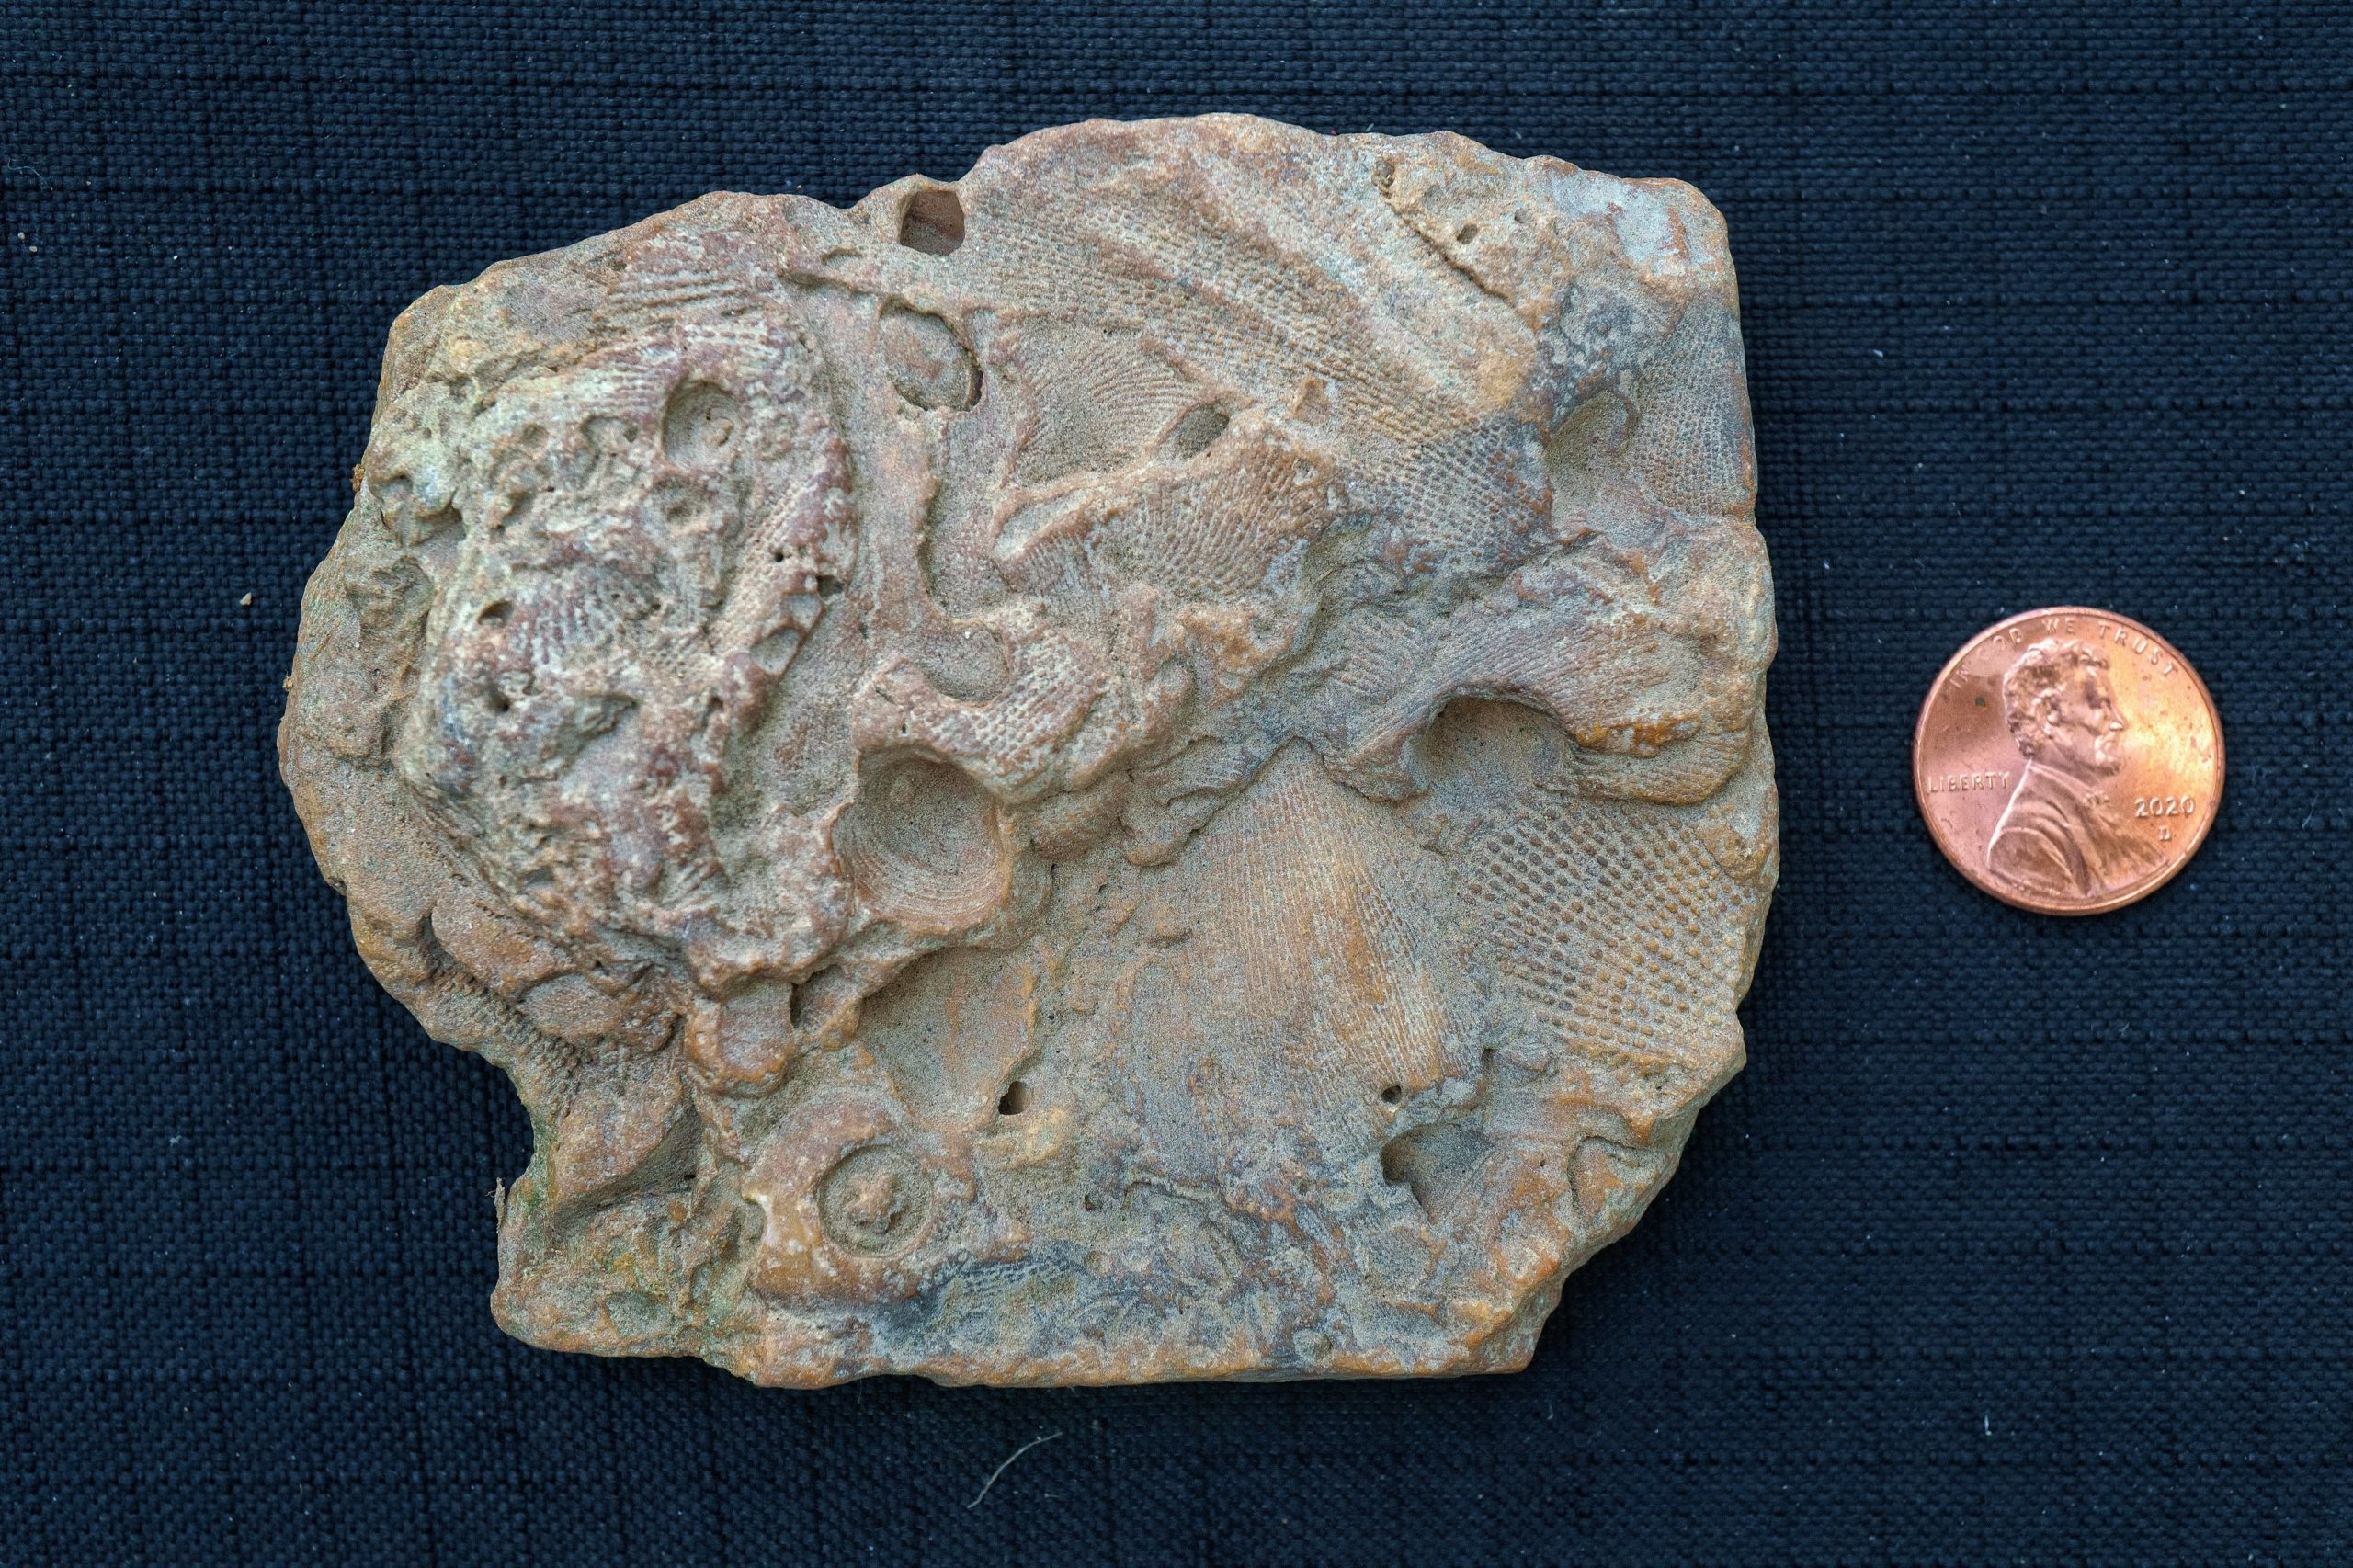 A rock with lots of different fossil impressions, next to a penny for scale. The rock is about four times as tall as the penny and five or six times as wide. The opposite side of the rock in the previous photo.